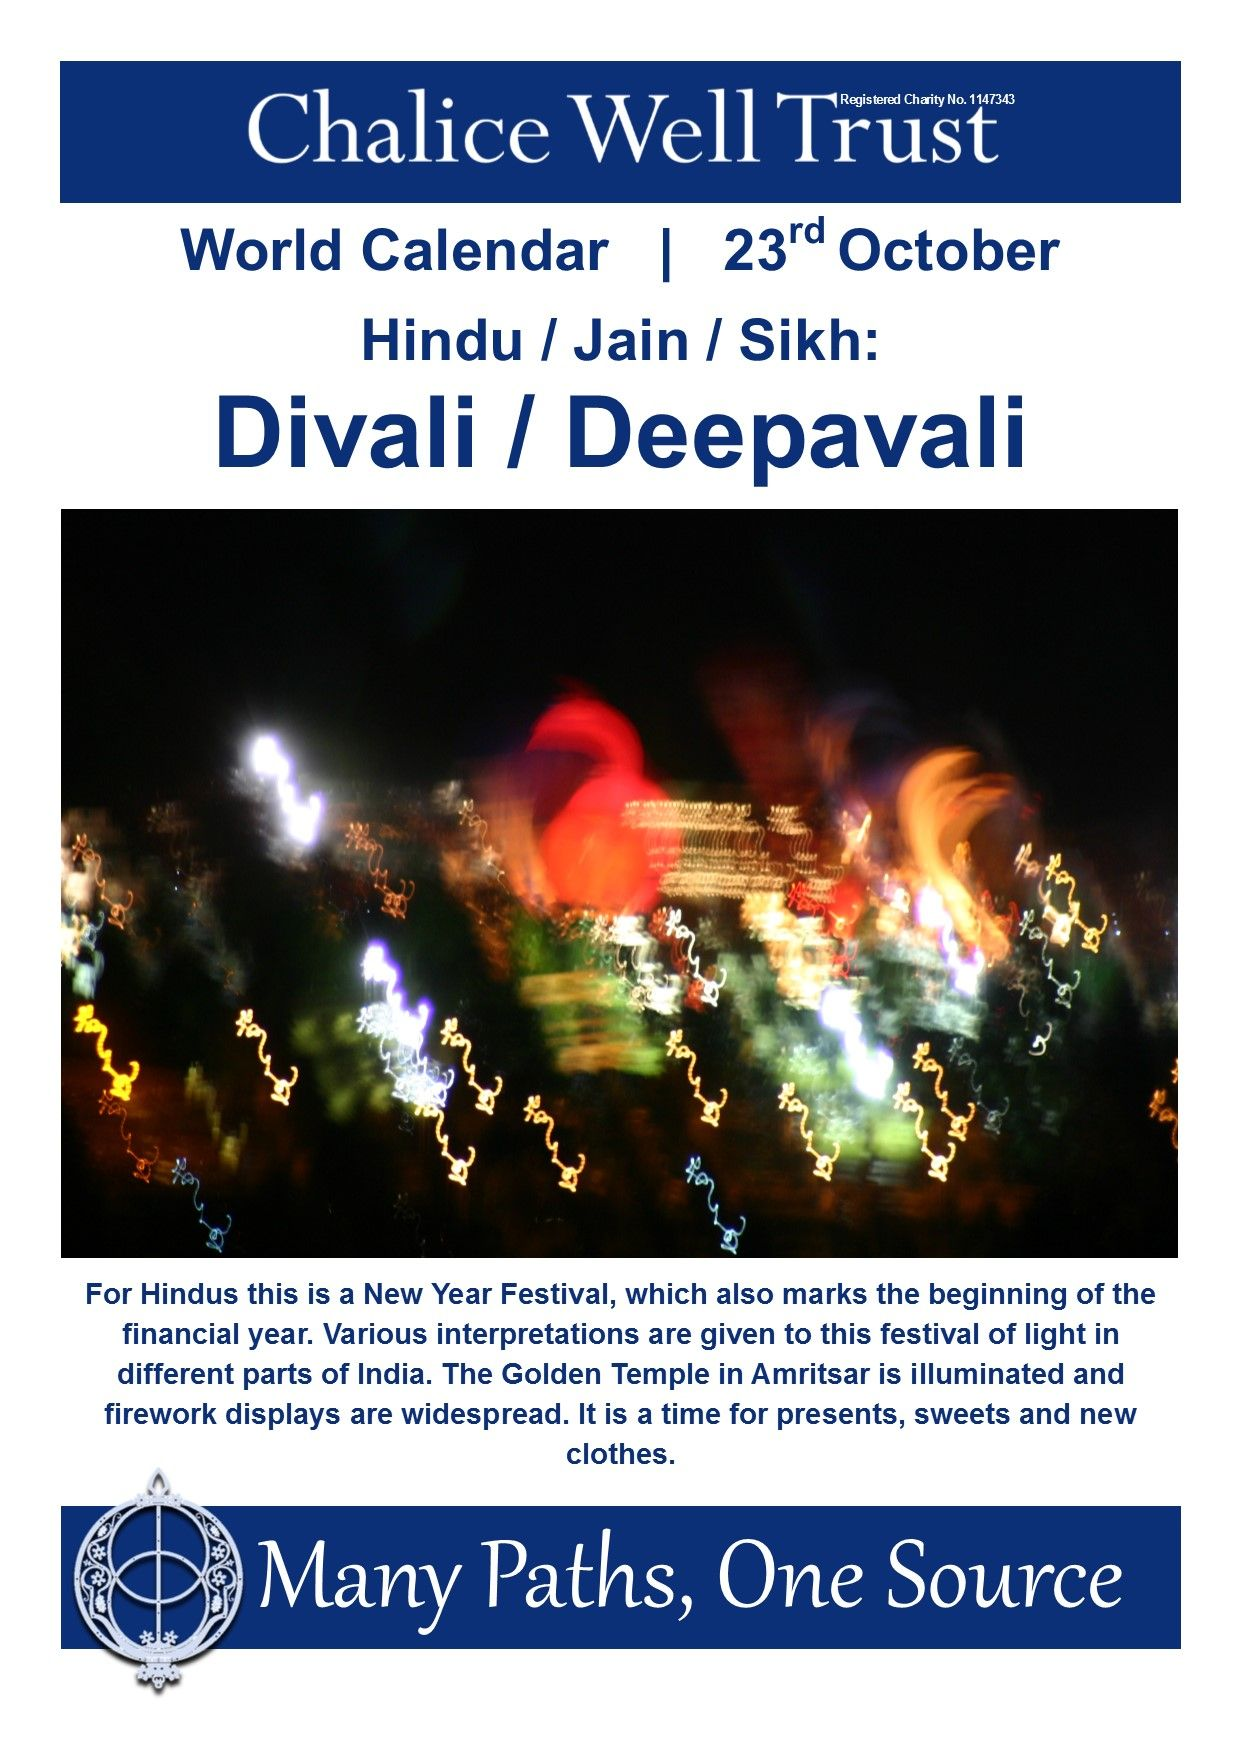 For Hindus this is a New Year Festival, which also marks